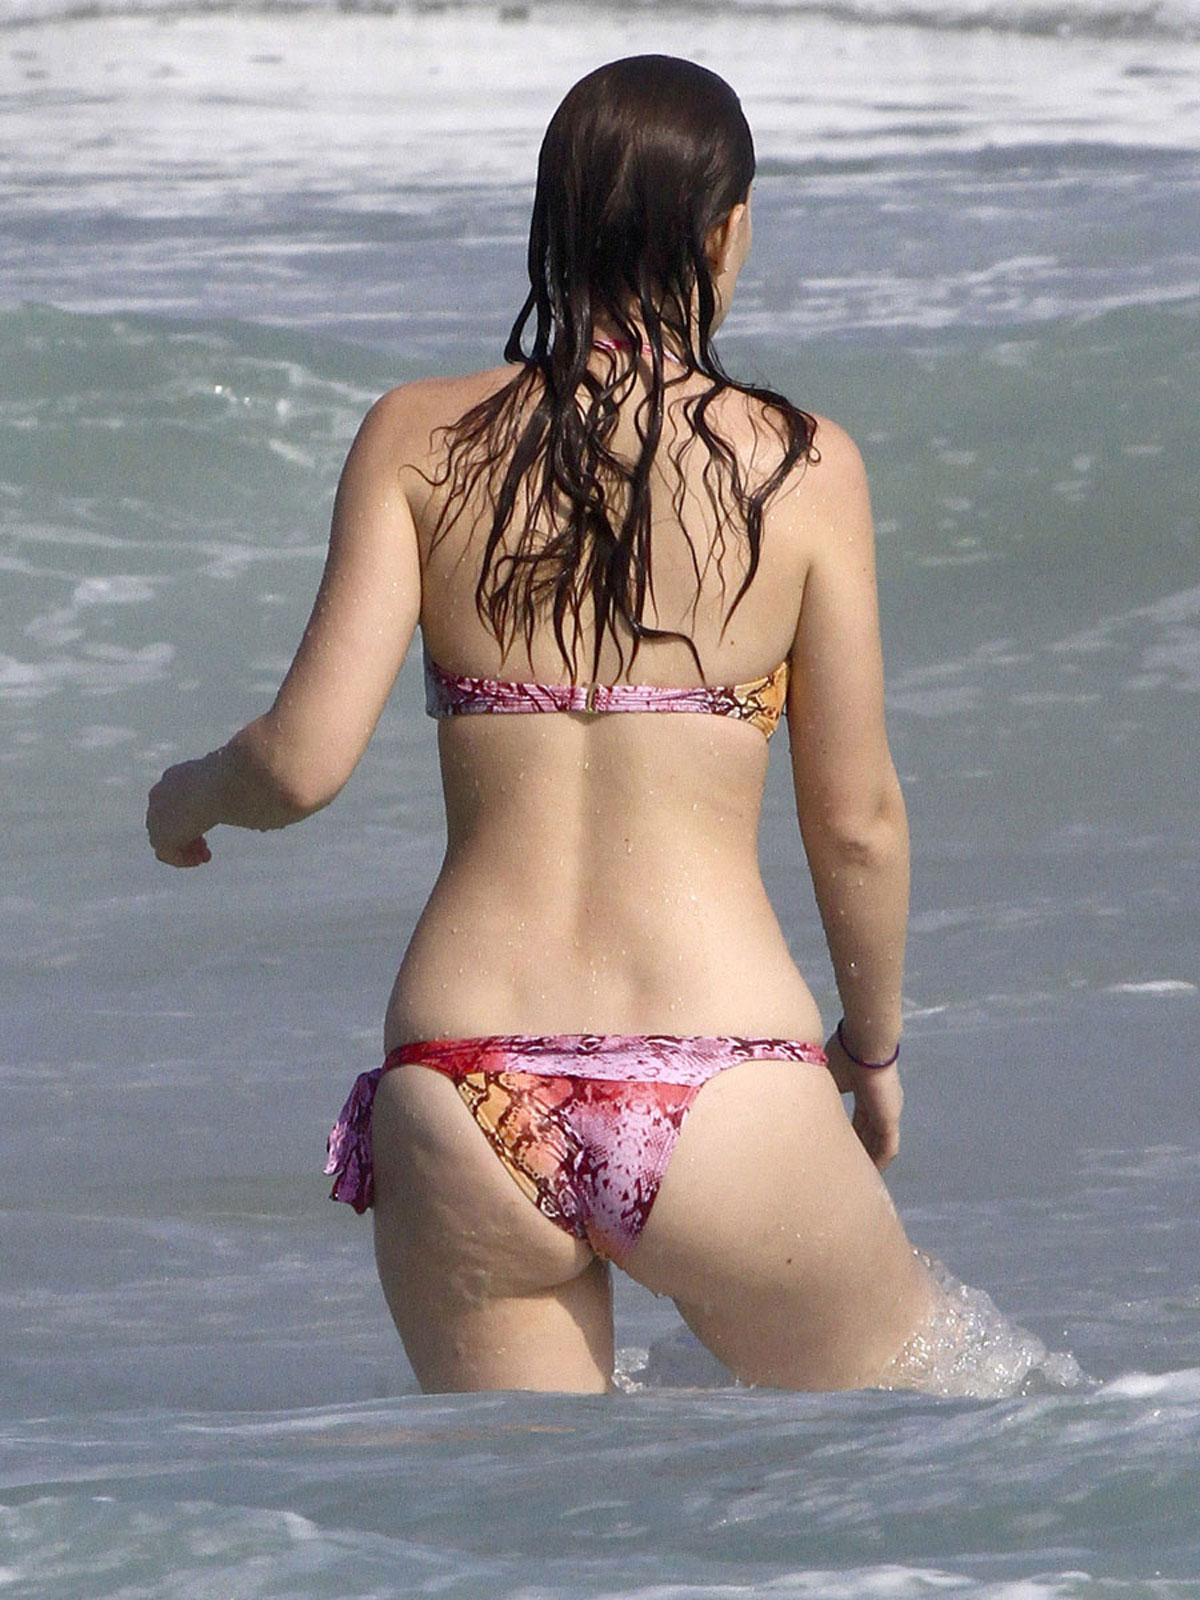 Paparazzi Bikini Leighton Meester naked photo 2017